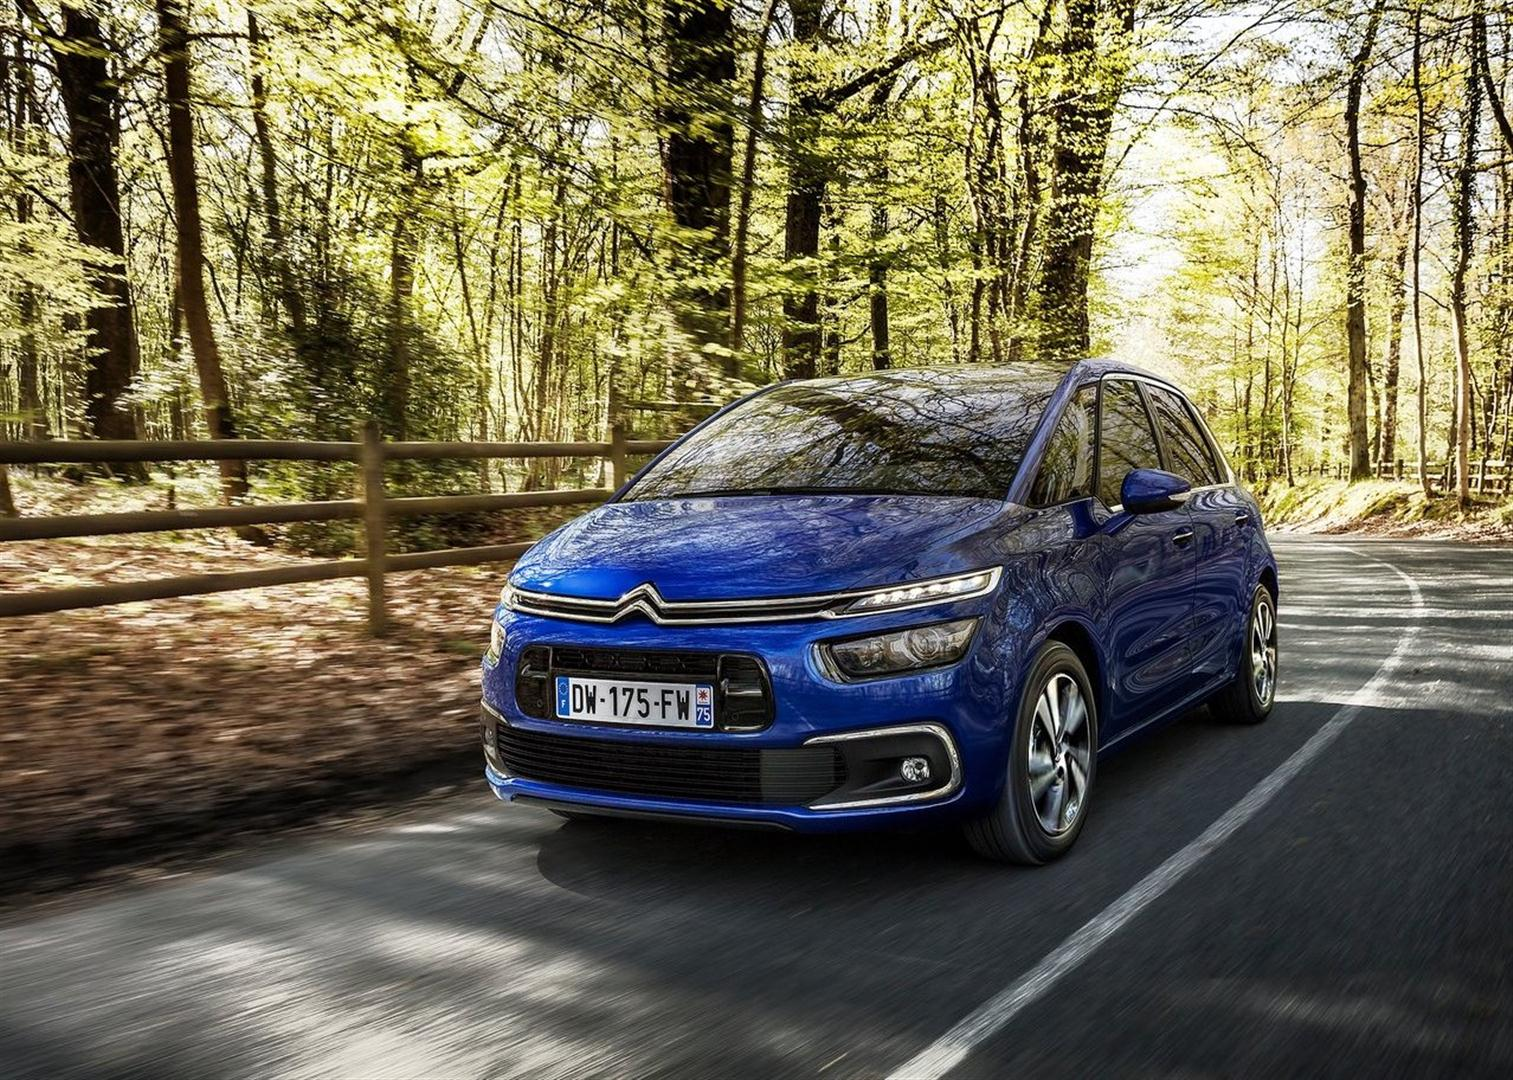 price of 2018 Citroen C4 Picasso